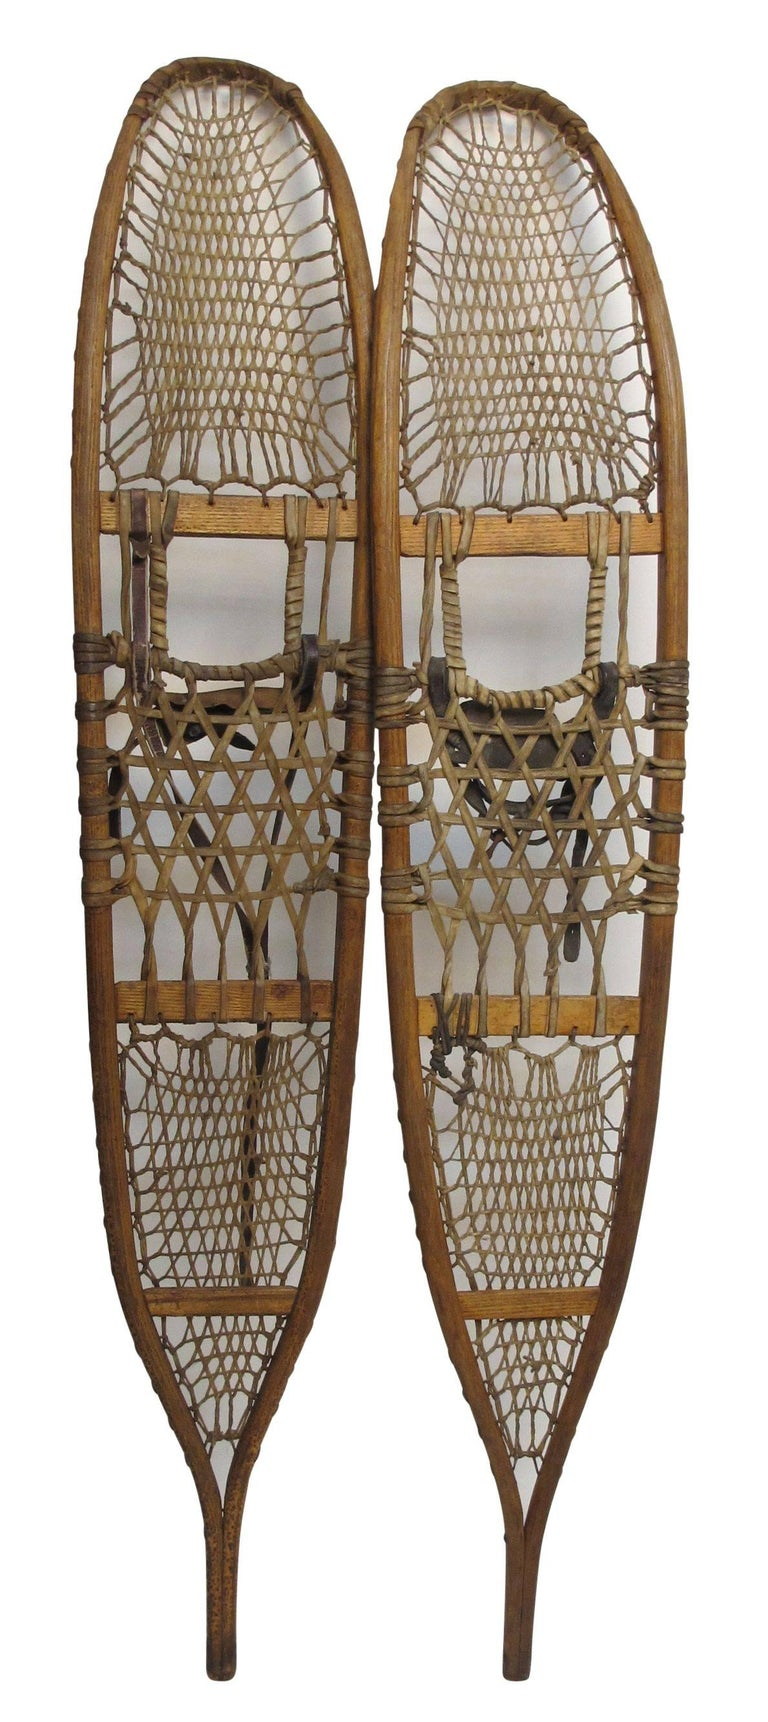 Pair of Antique Snowshoes, American, circa 1930 For Sale 3